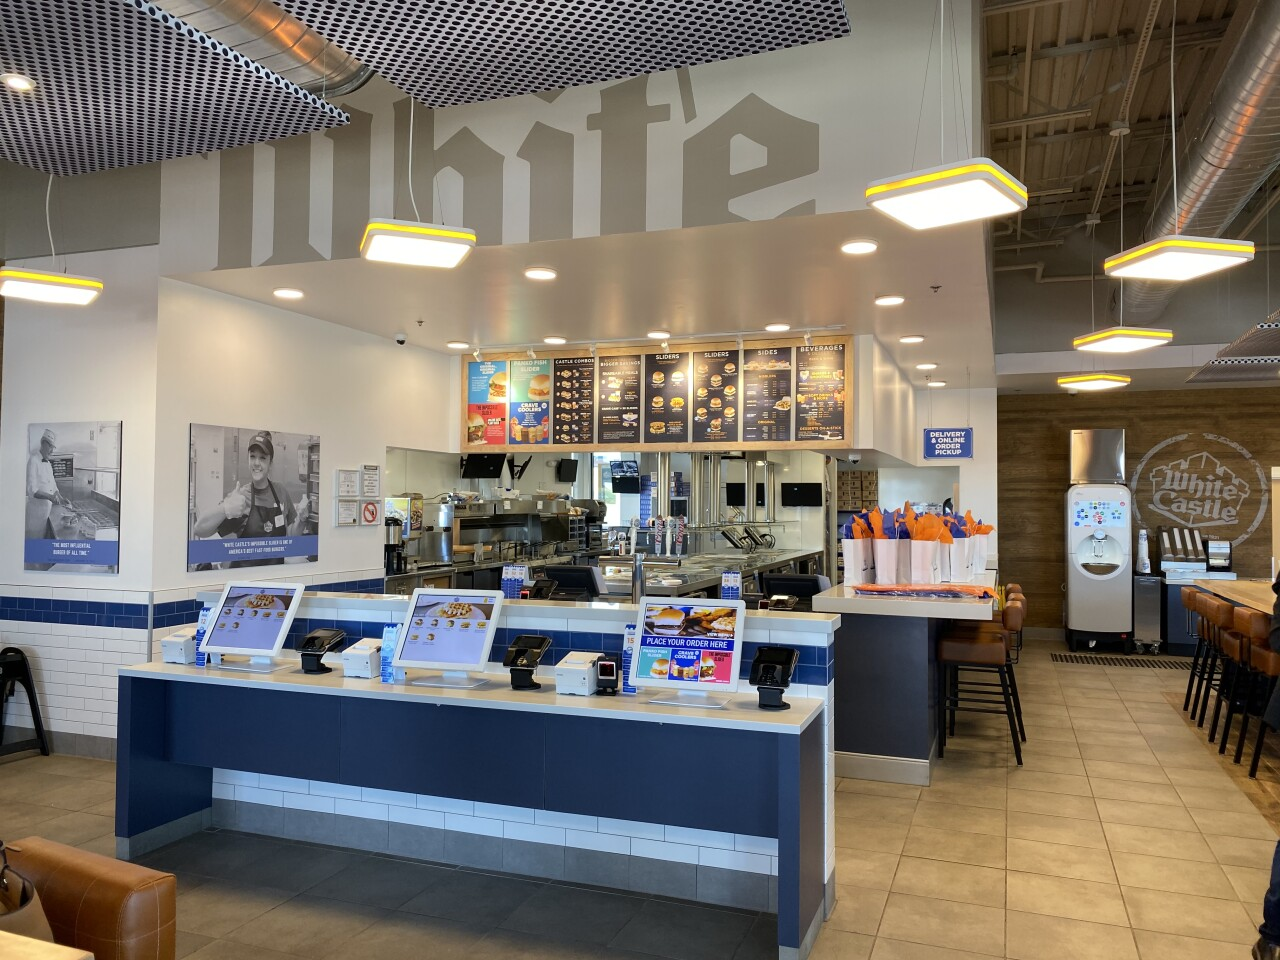 AZ White Castle location set to open